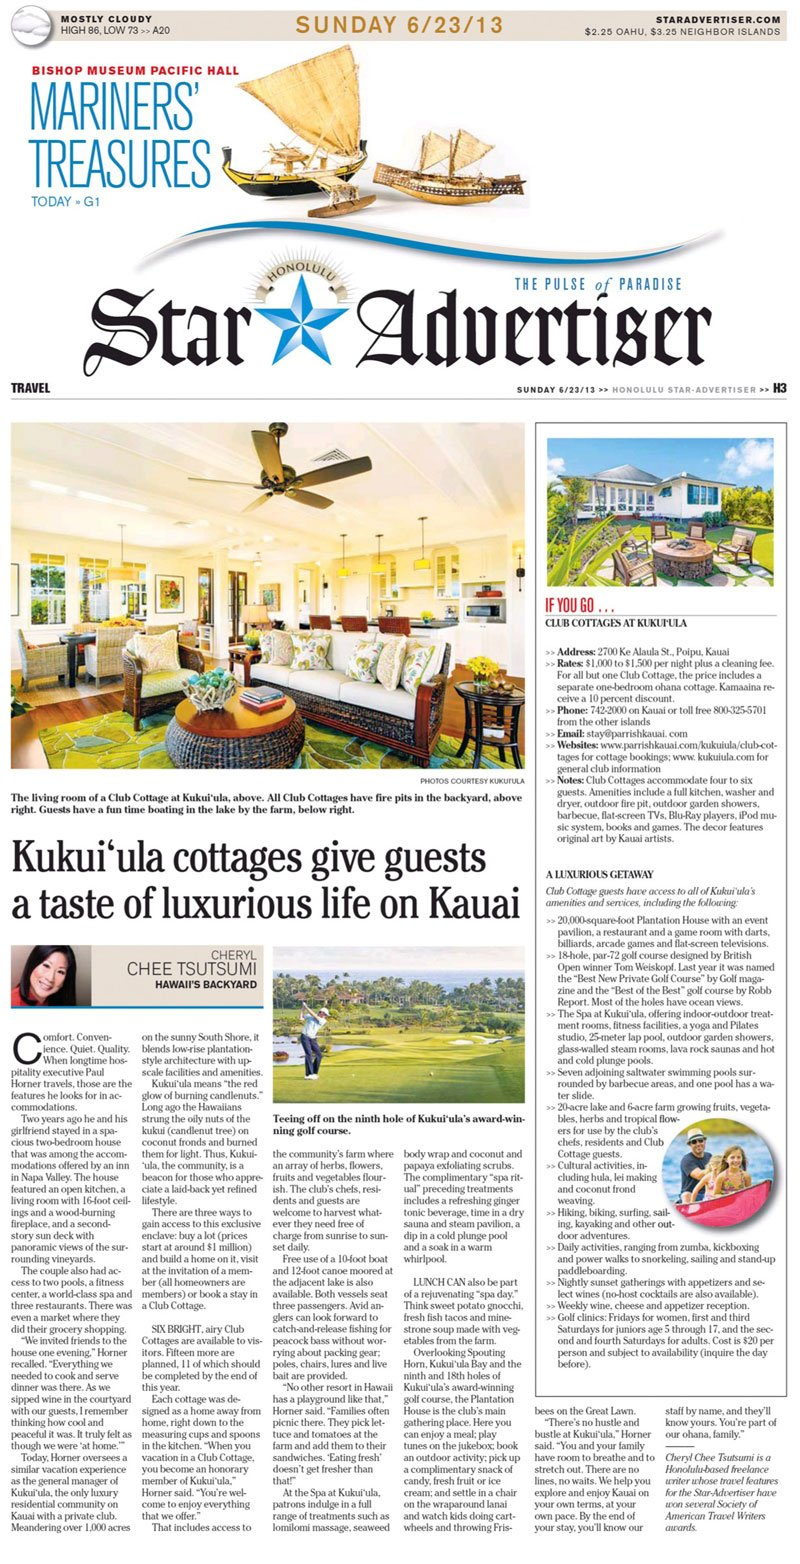 kukuiula-club-cottages-hsa